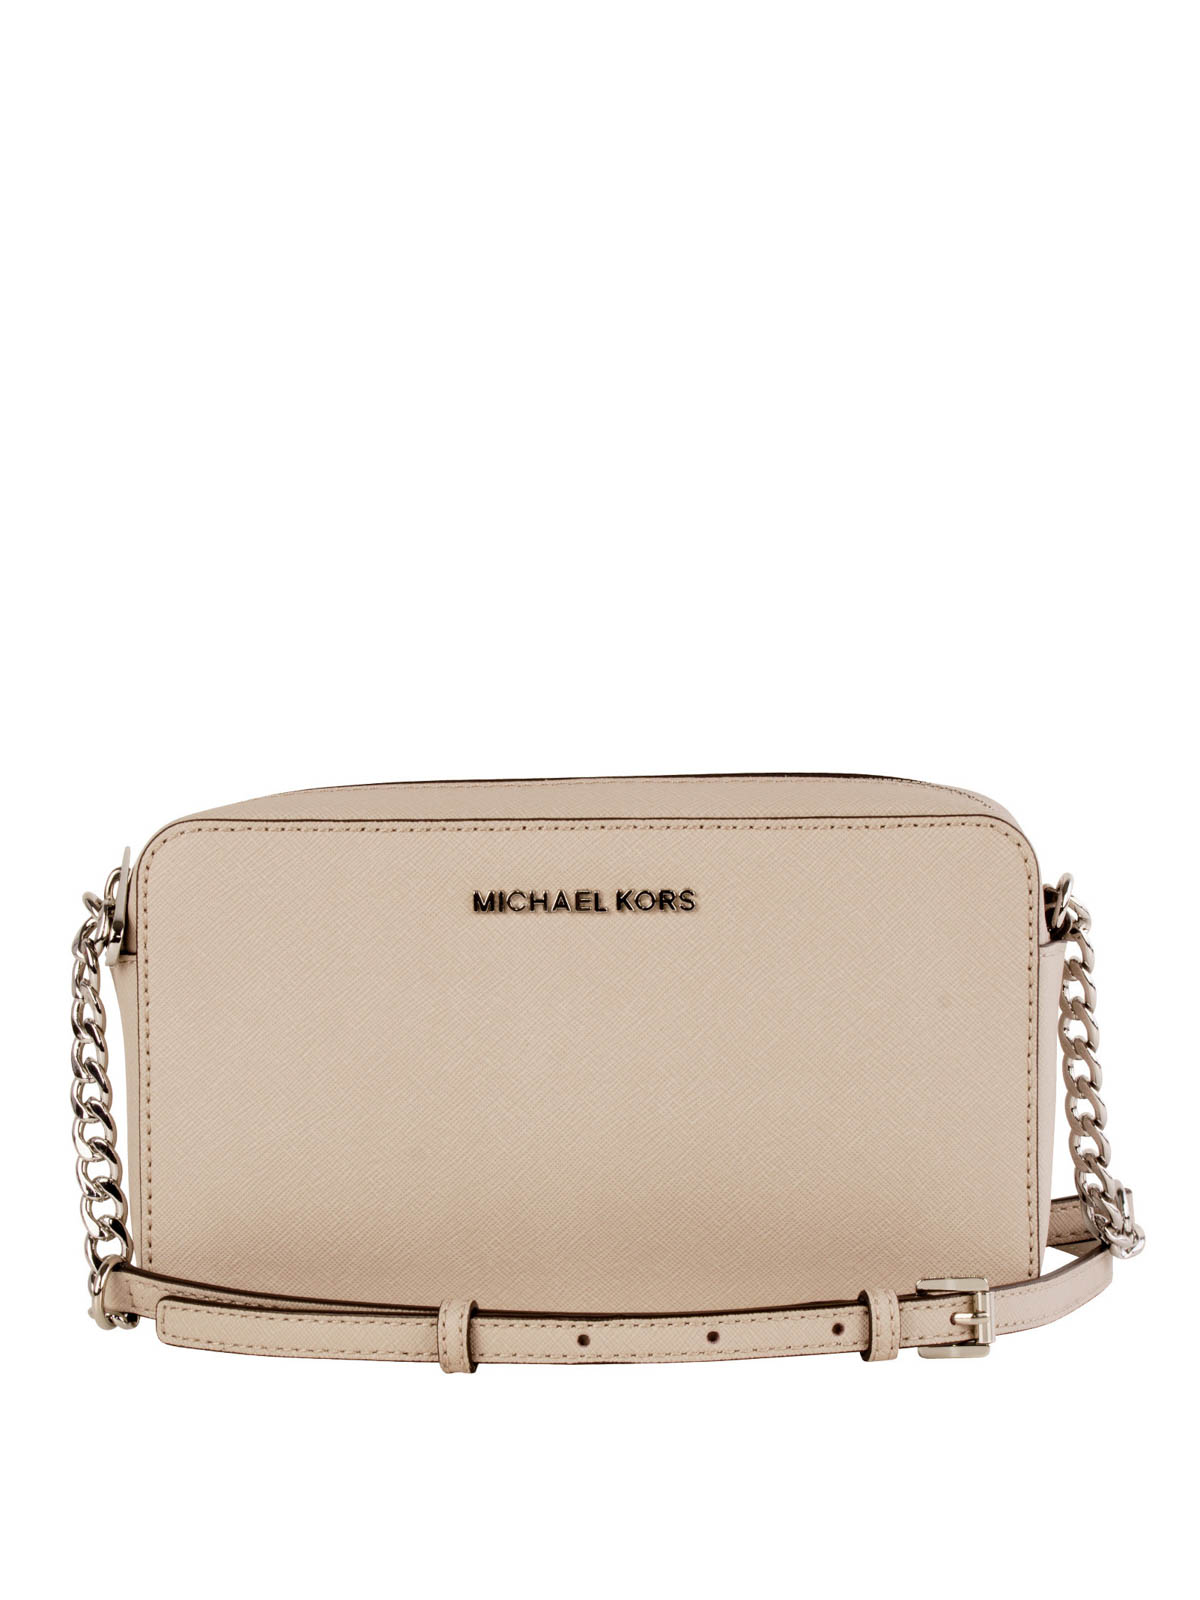 jet set travel crossbody by michael kors cross body bags. Black Bedroom Furniture Sets. Home Design Ideas